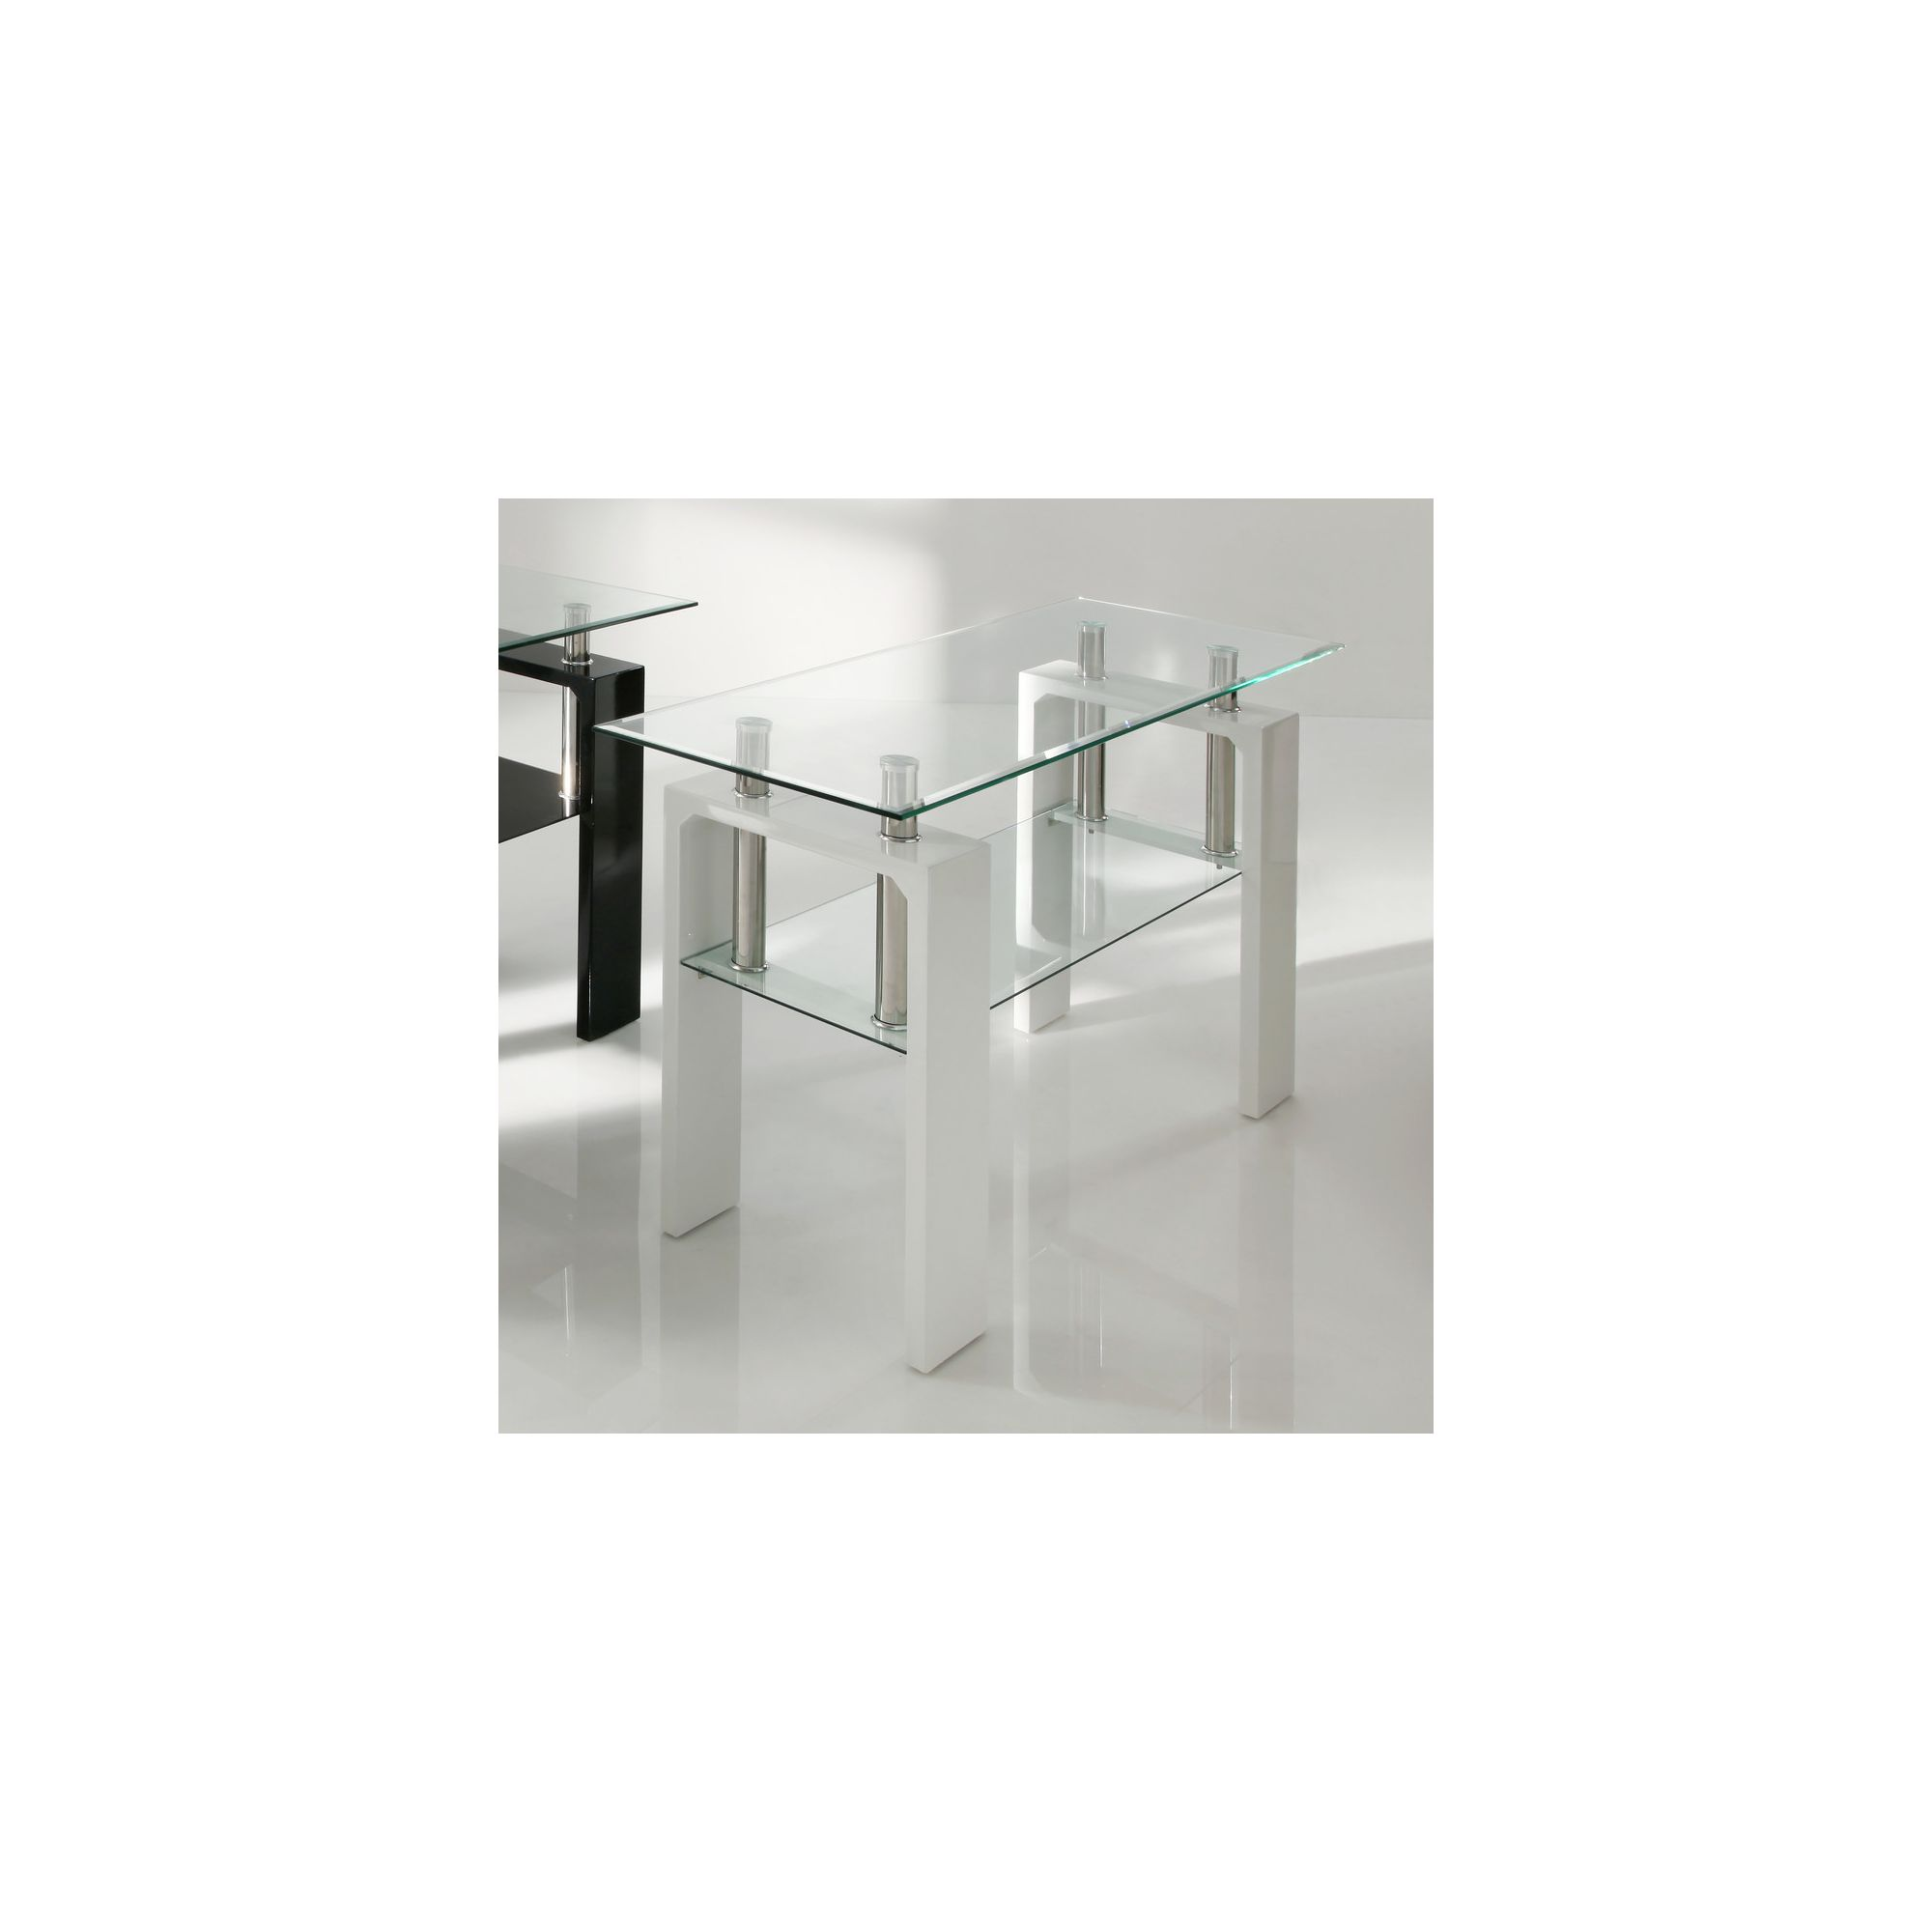 Wilkinson Furniture Calico Console Table - White